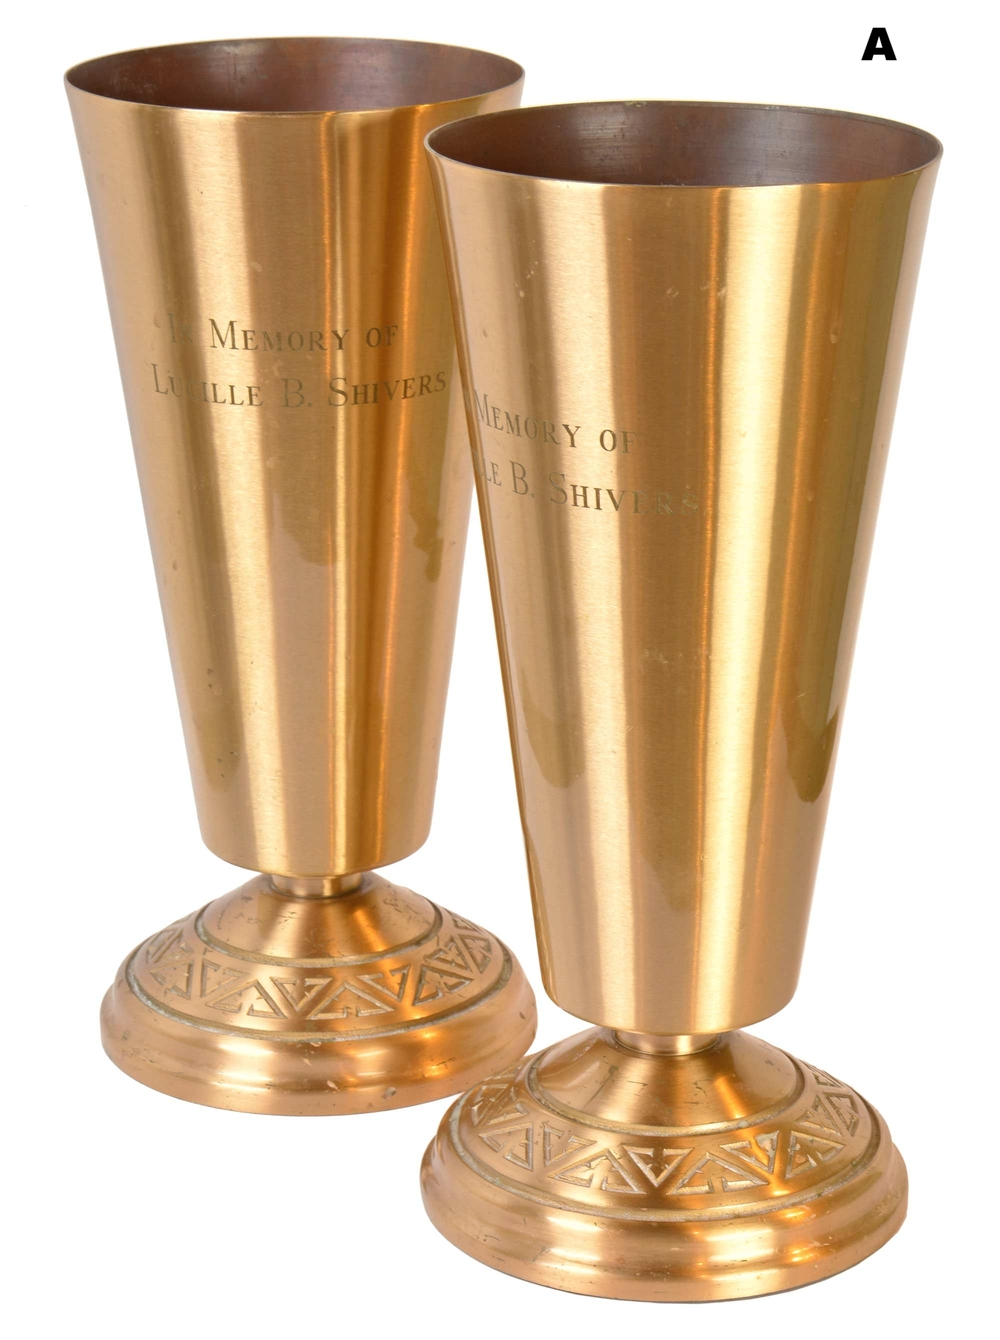 46332-A-engraved-memorial-brass-vases.jpg